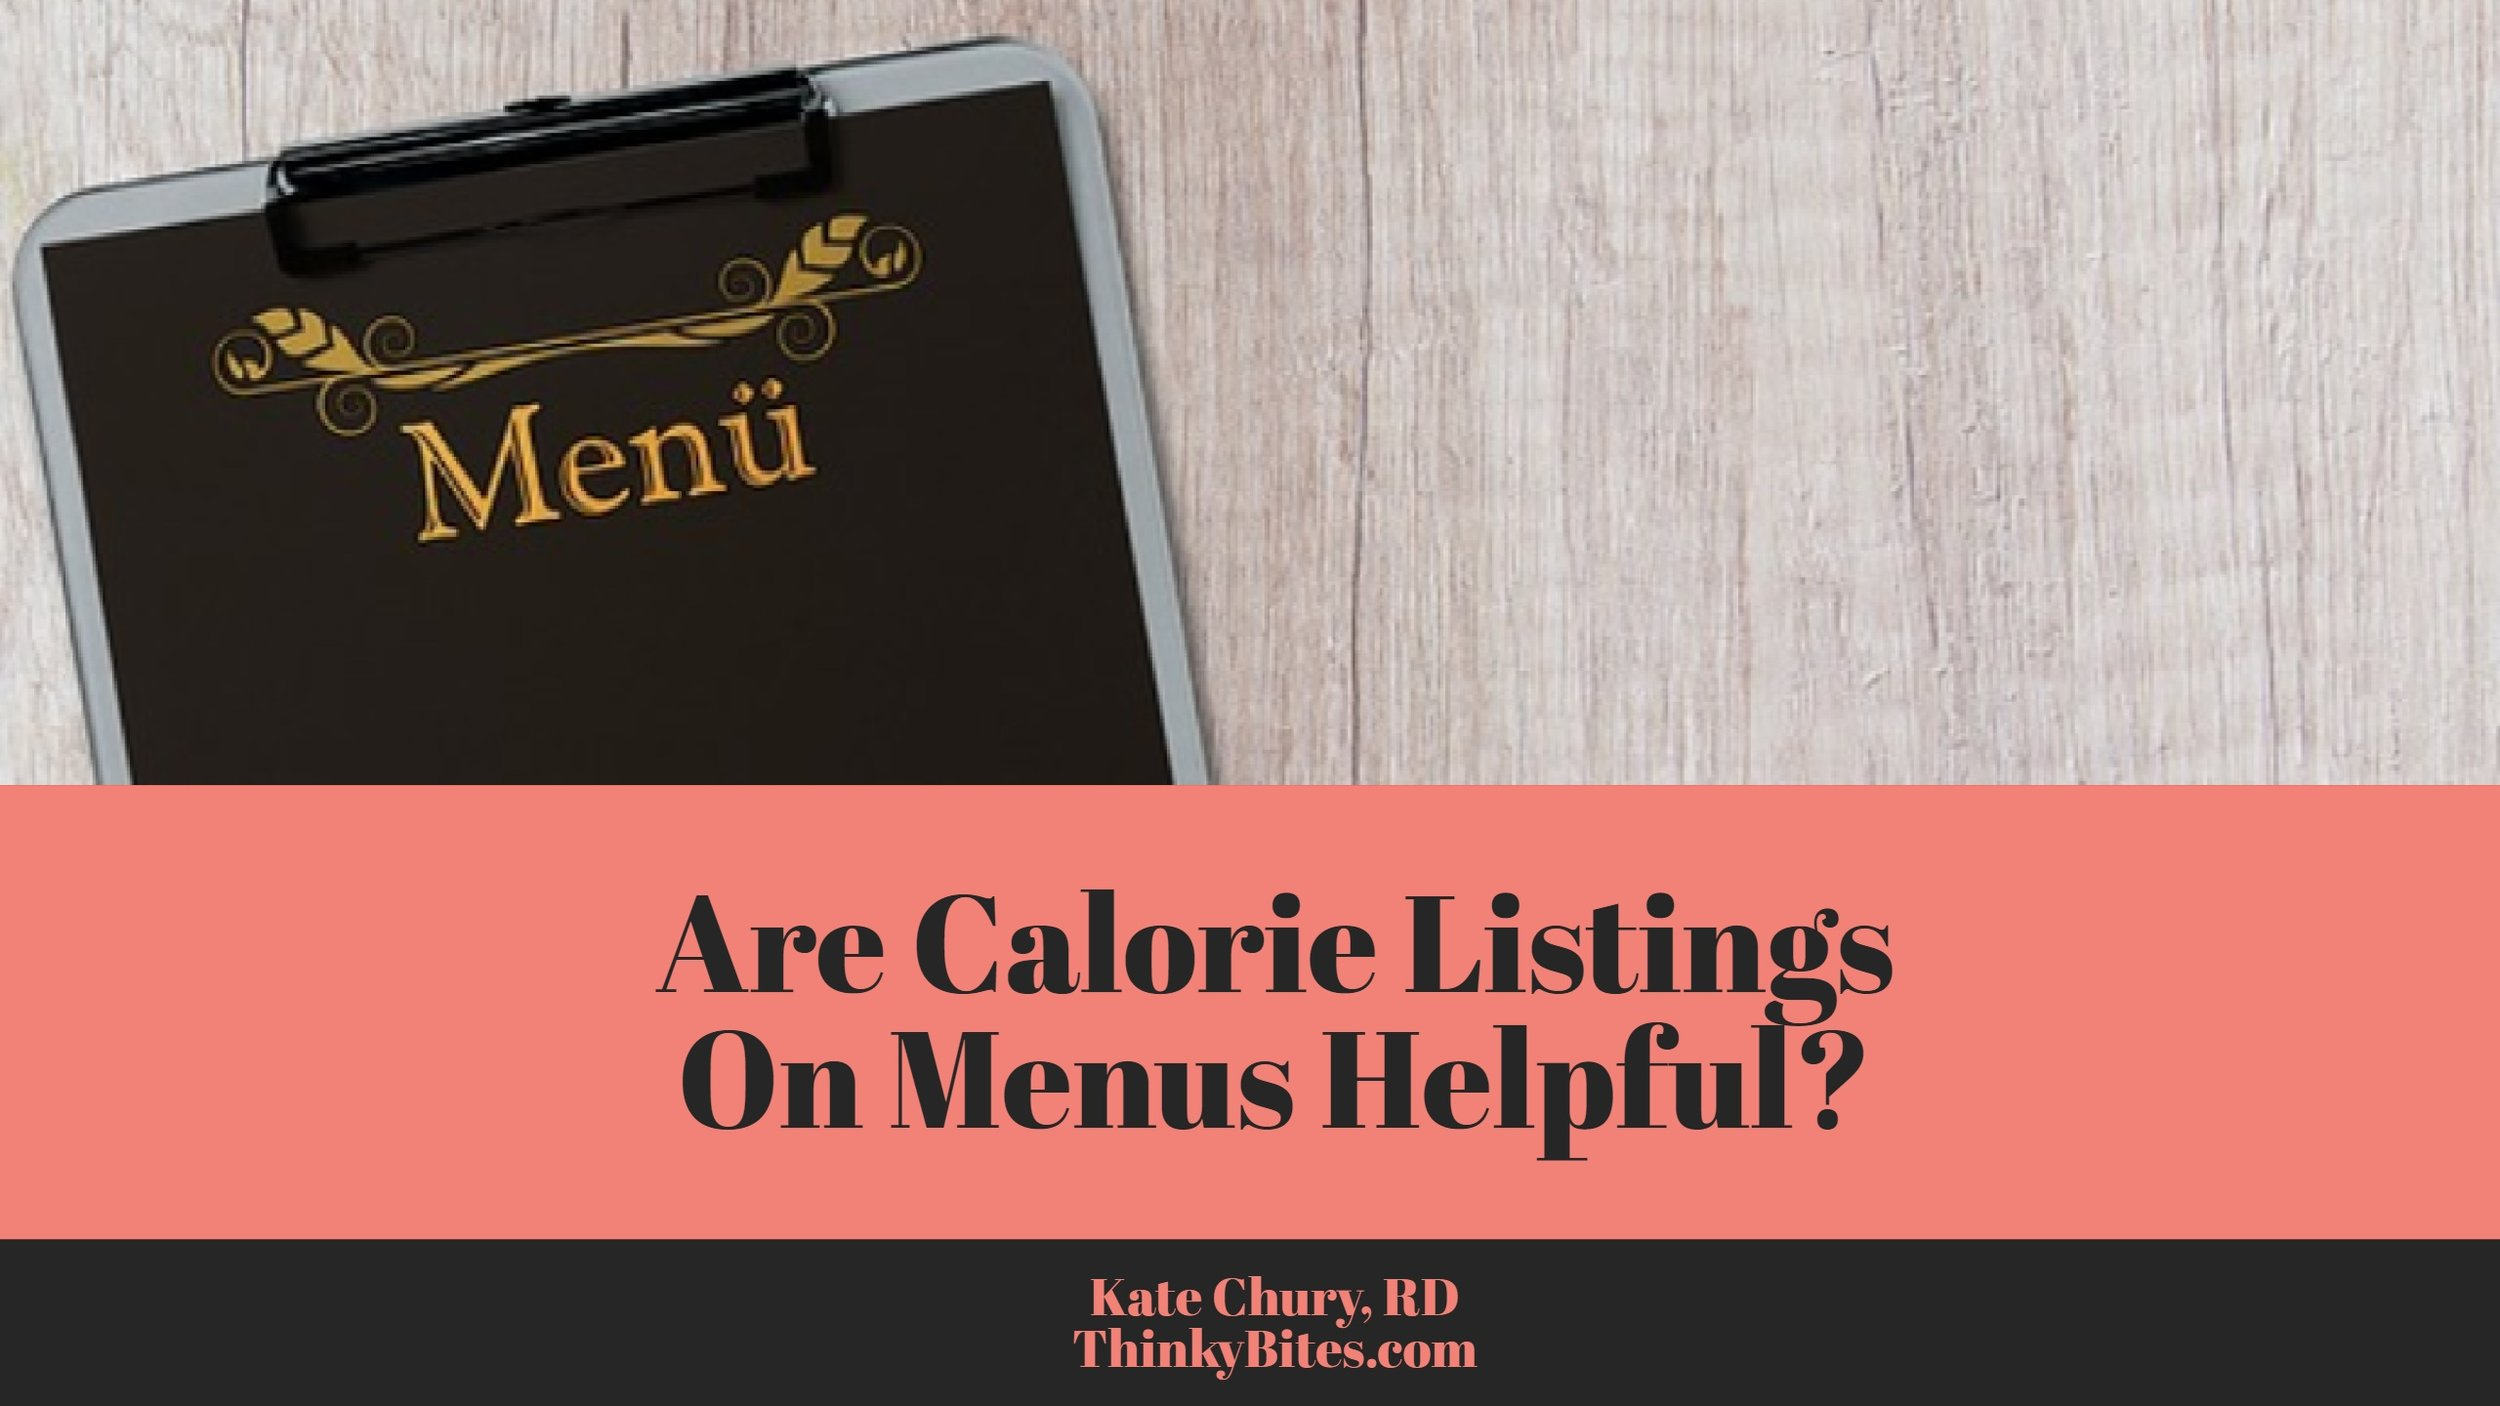 Are Calorie Listings On Menus Helpful?